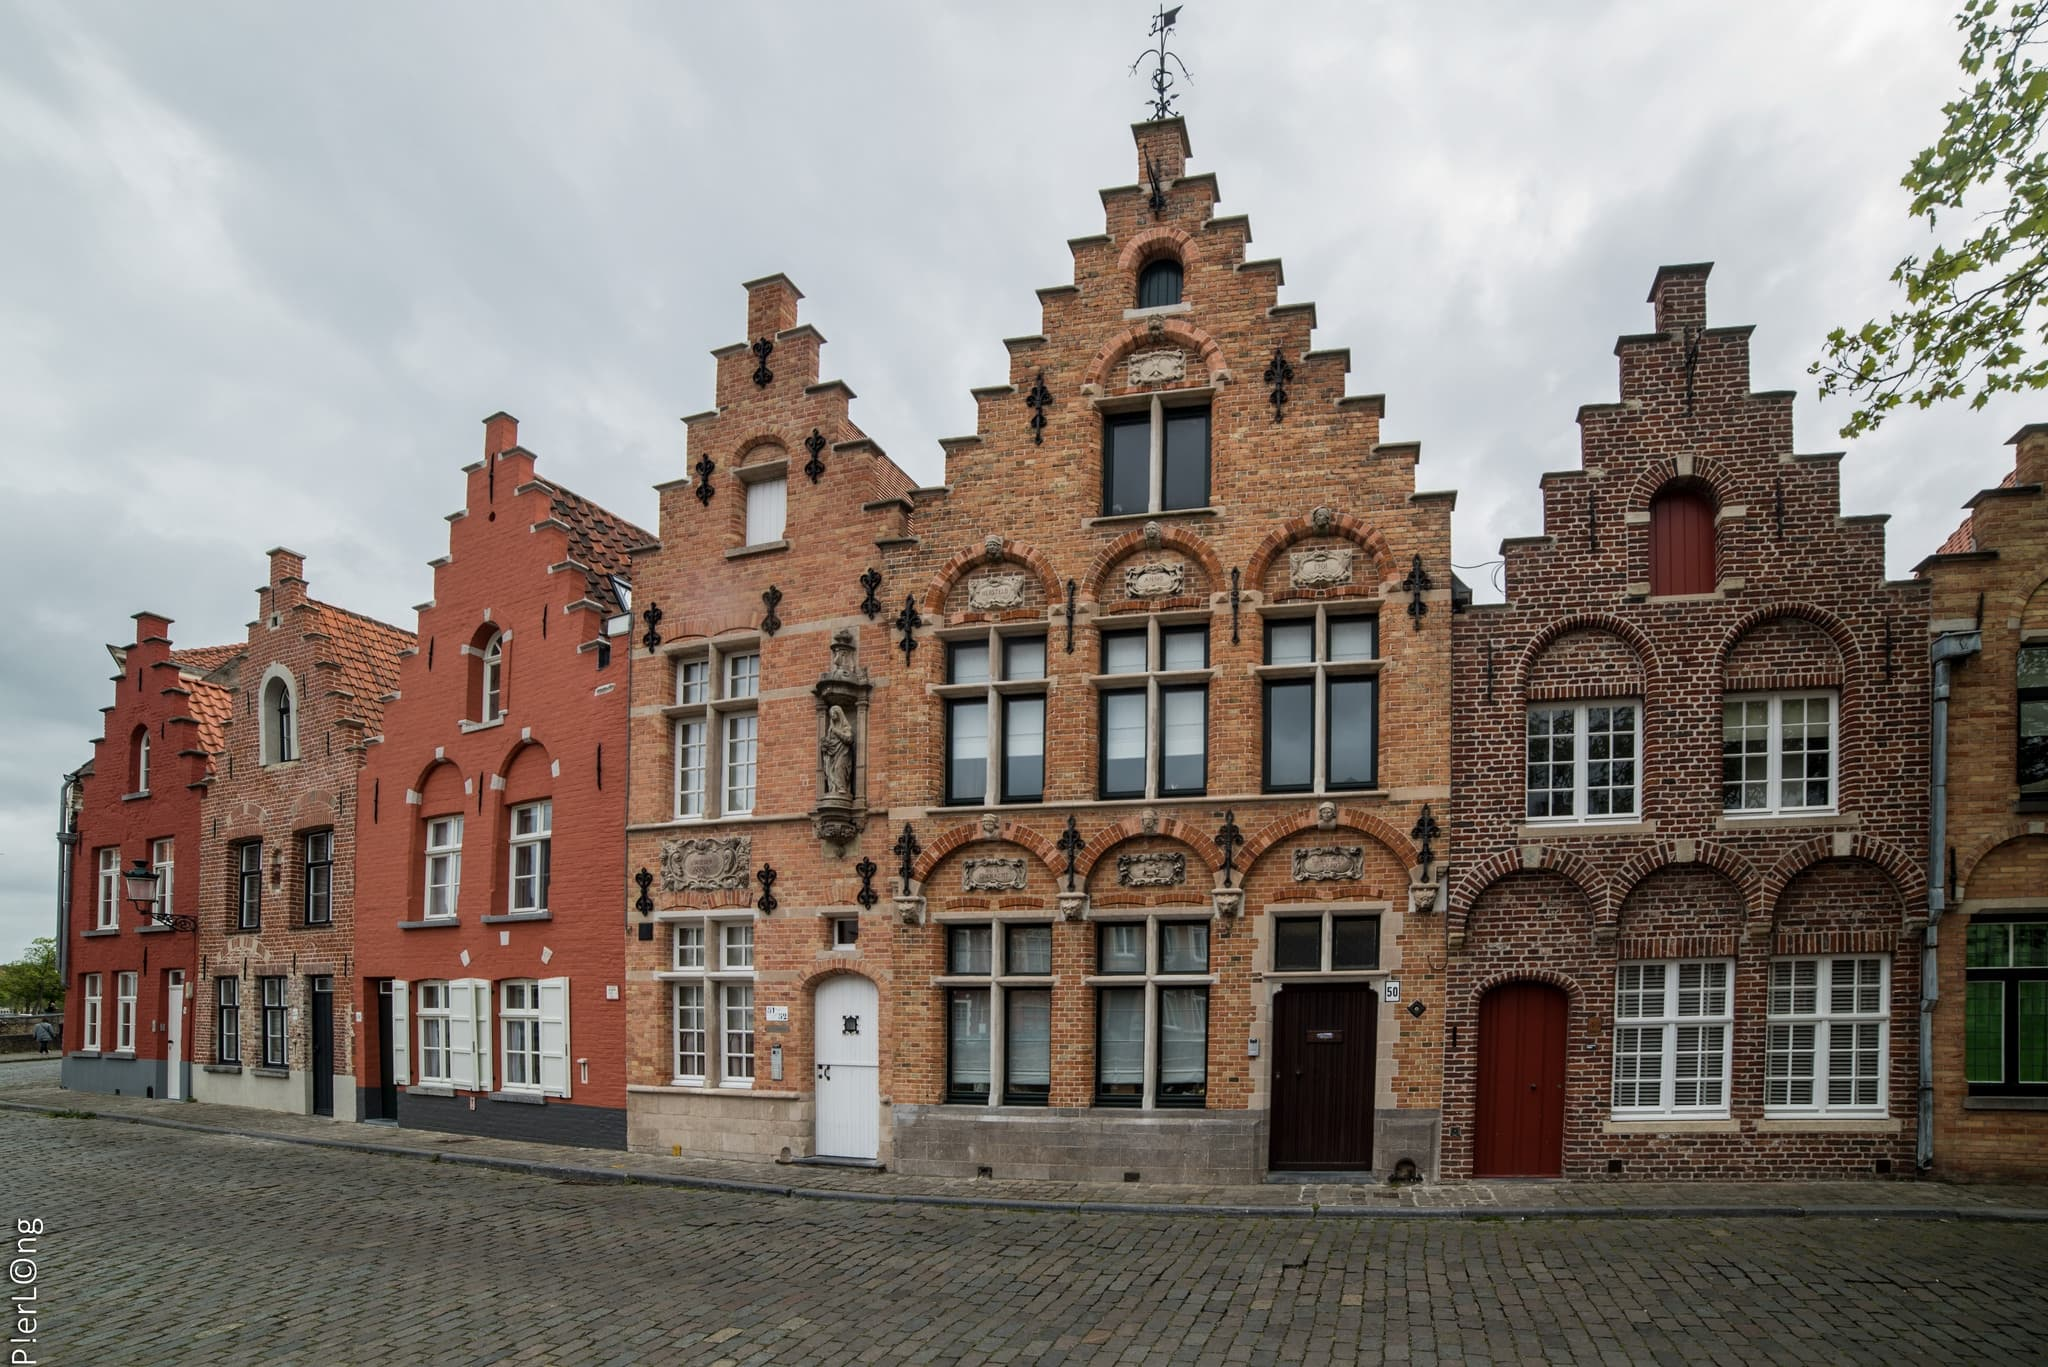 Wallpapers Hd Technology Bruges Belgium Desktop Wallpapers Images Photos High Quality